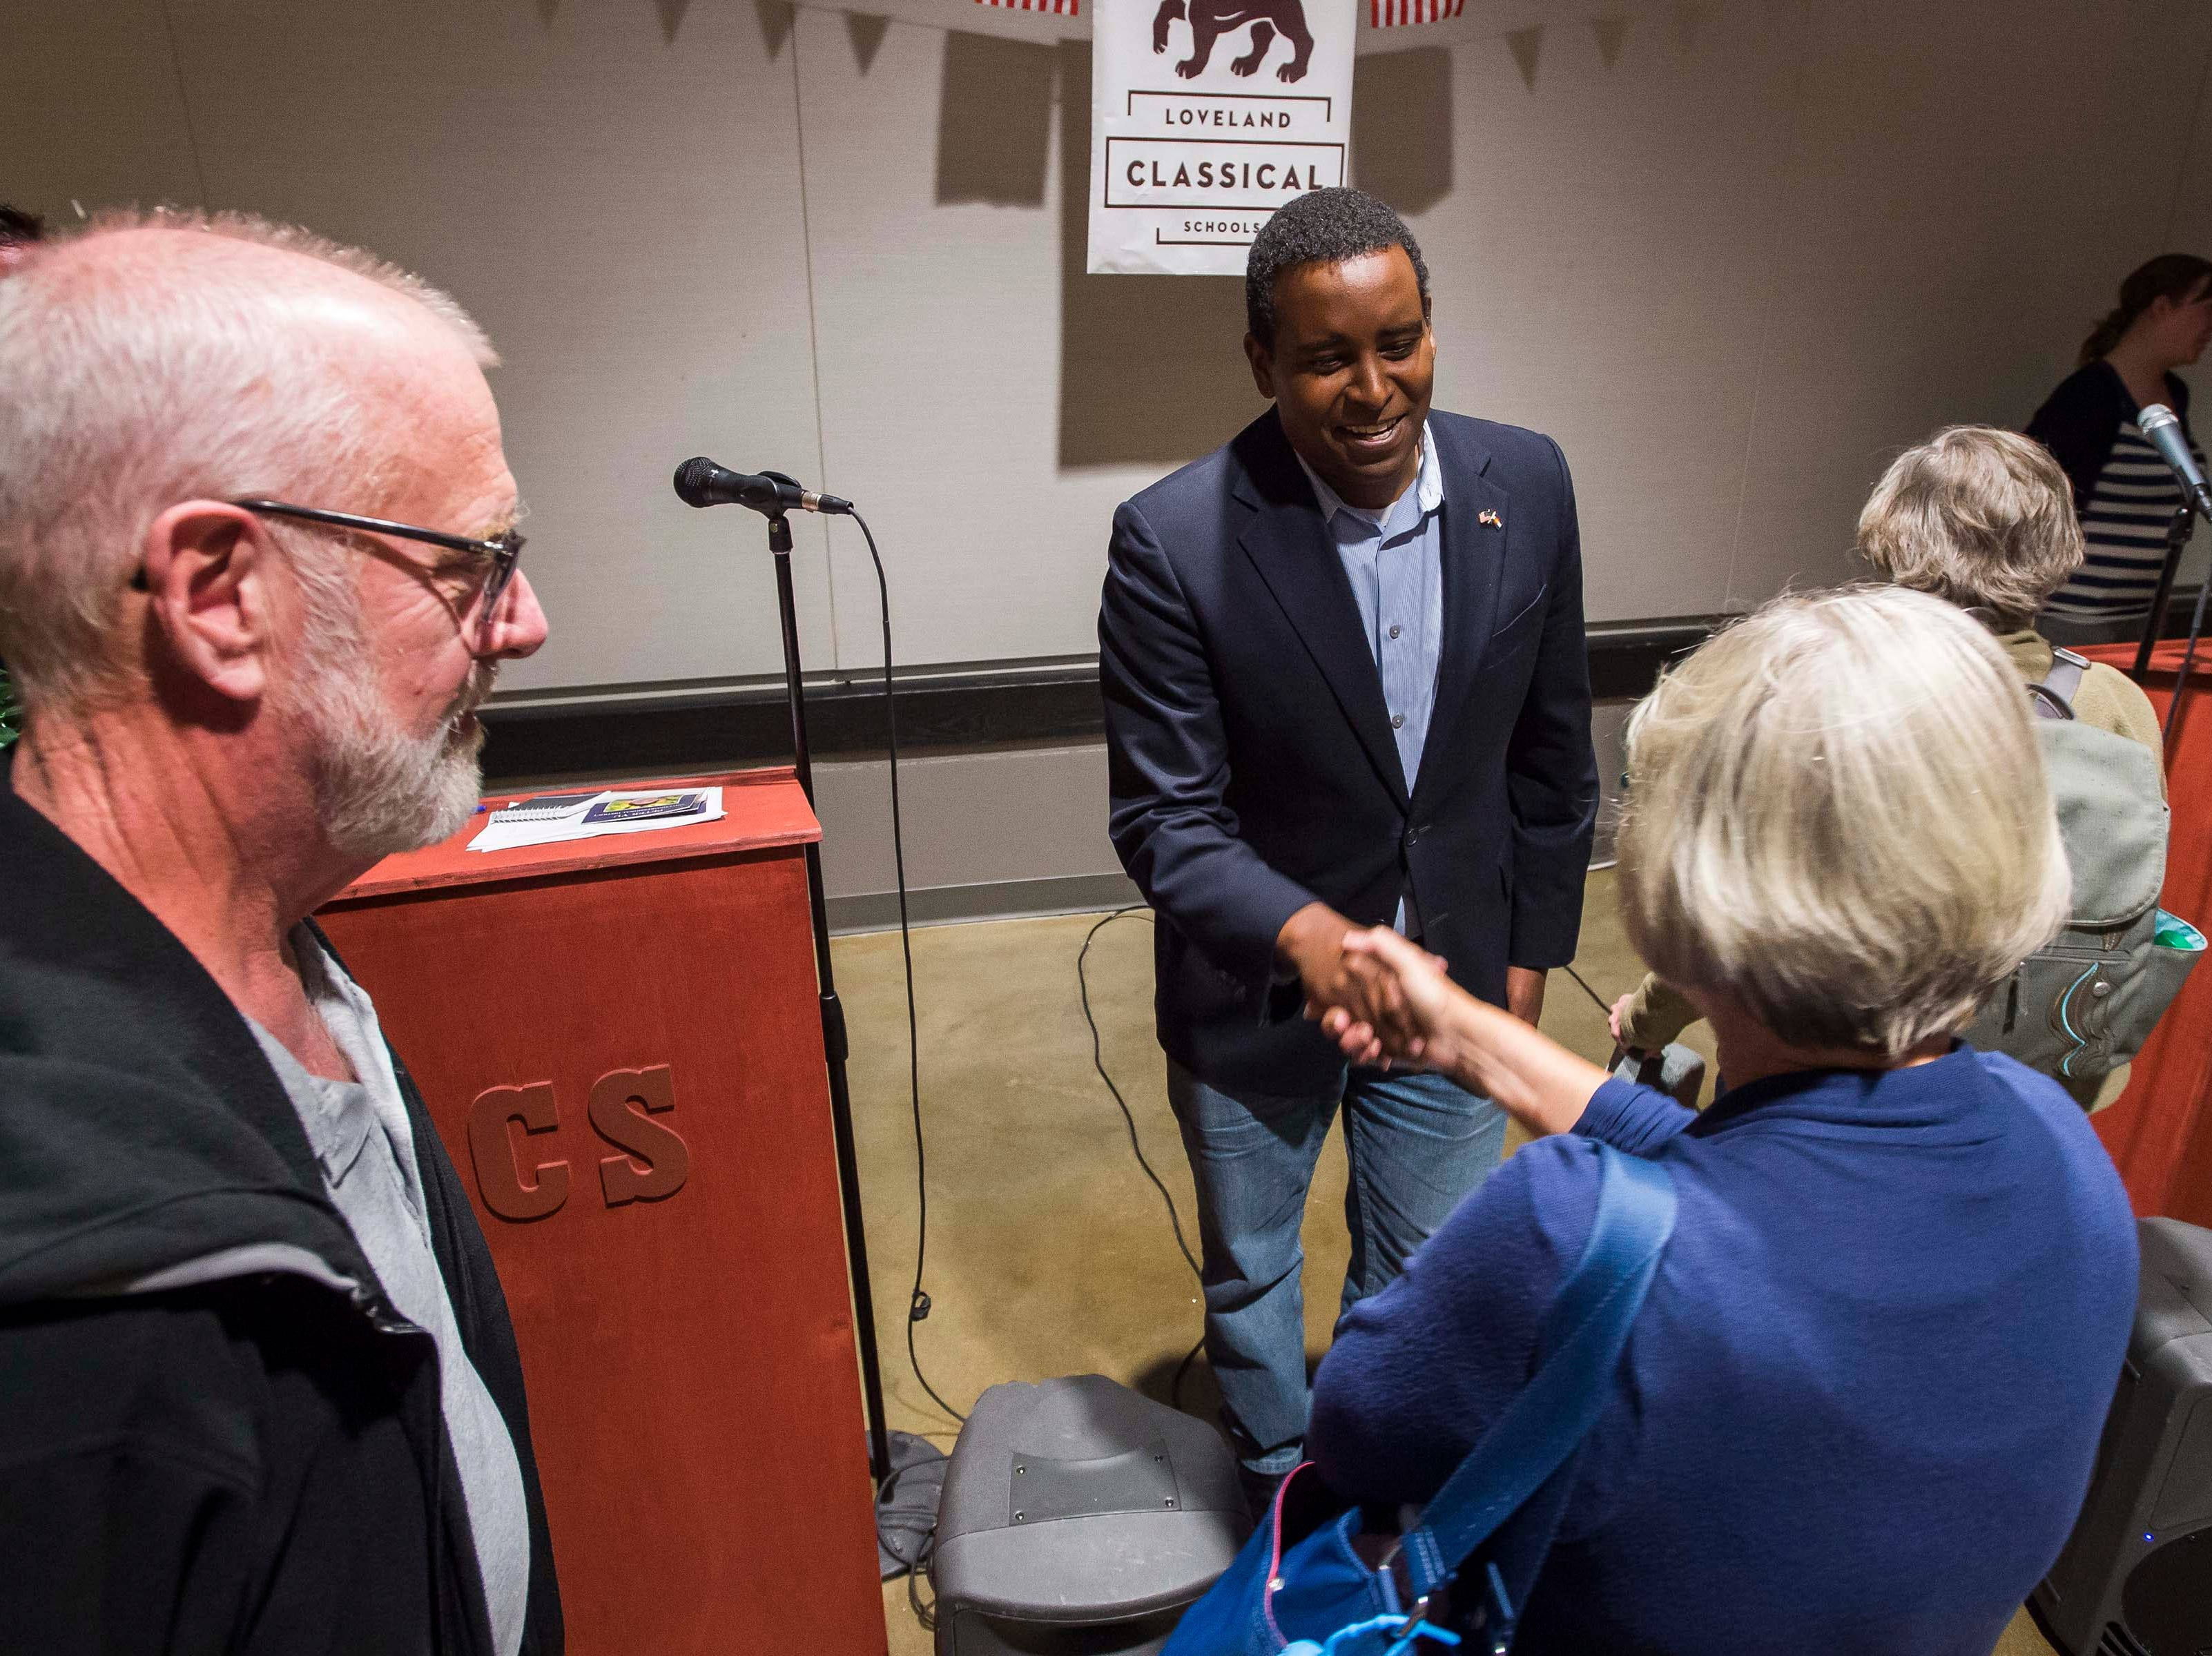 Colorado's 2nd Congressional District Democratic nominee Joe Neguse shakes hands with Loveland resident Becky Peters while her husband Tim looks on after Neguse participated in a debate with Republican nominee Peter Y on Wednesday, Sept. 26, 2018, at the Loveland Classical Schools in Loveland, Colo.